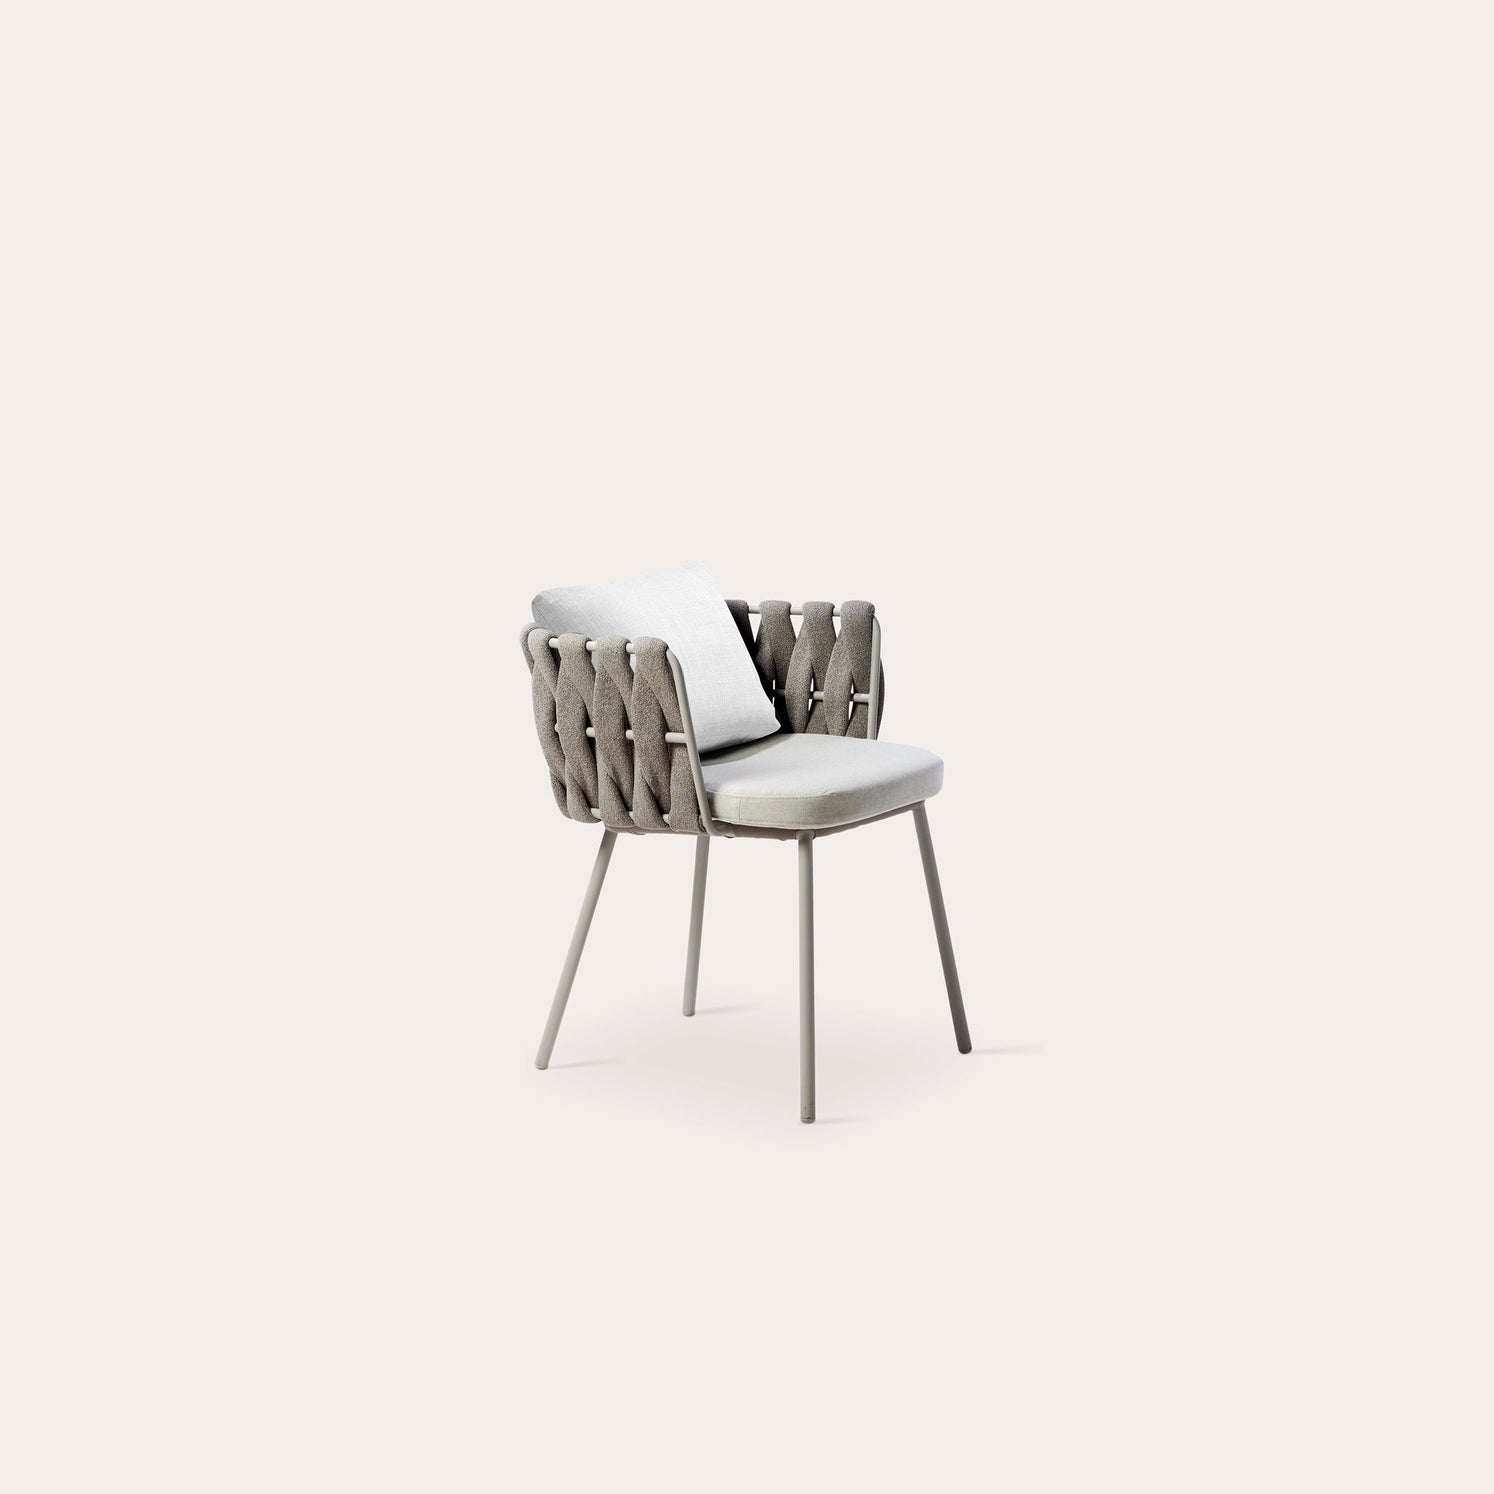 TOSCA Armchair Outdoor Monica Armani Designer Furniture Sku: 007-200-11286